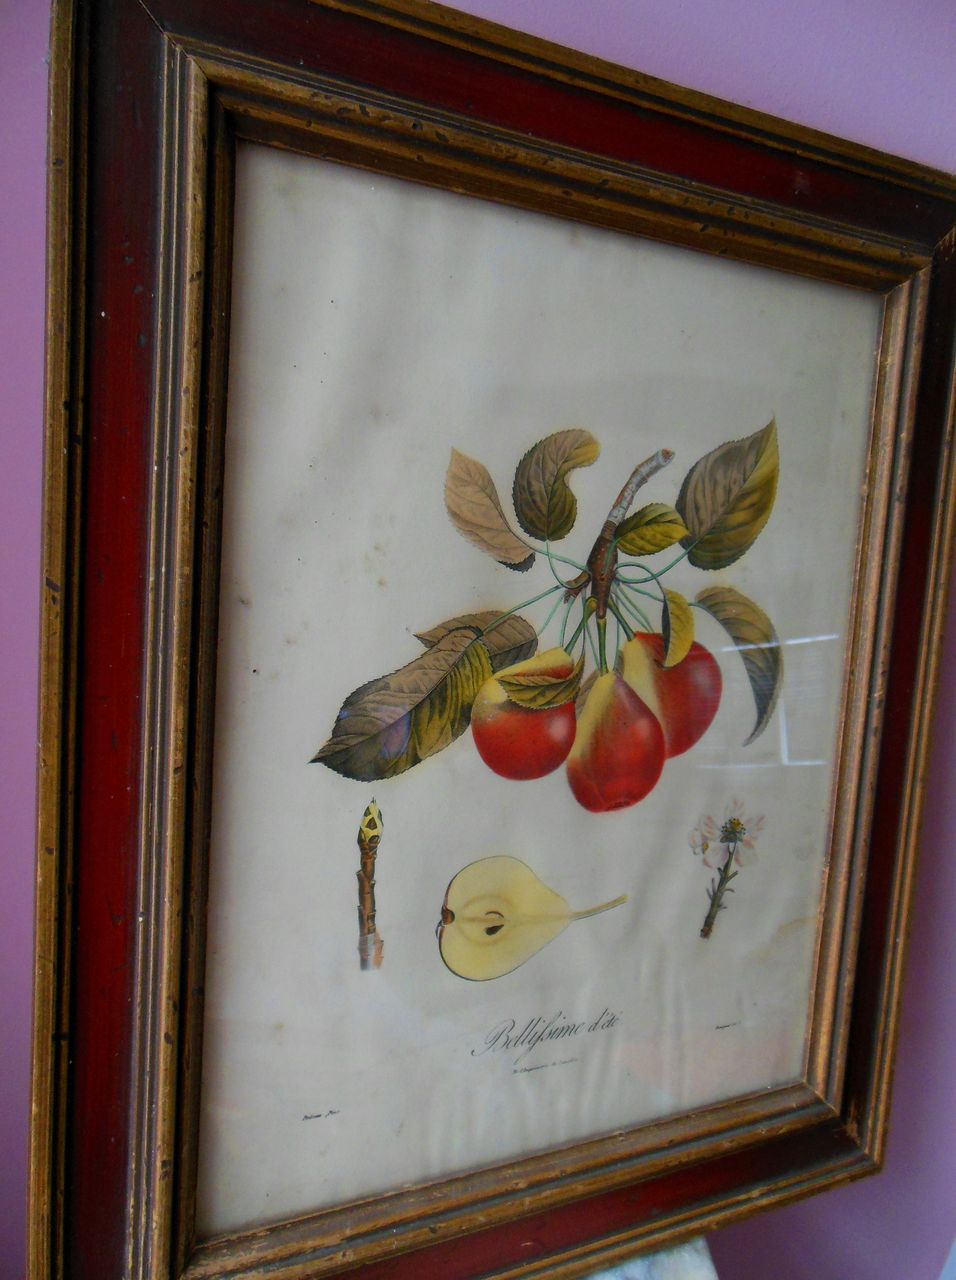 19C French Fruit Botanical Langlois PEAR Engraving